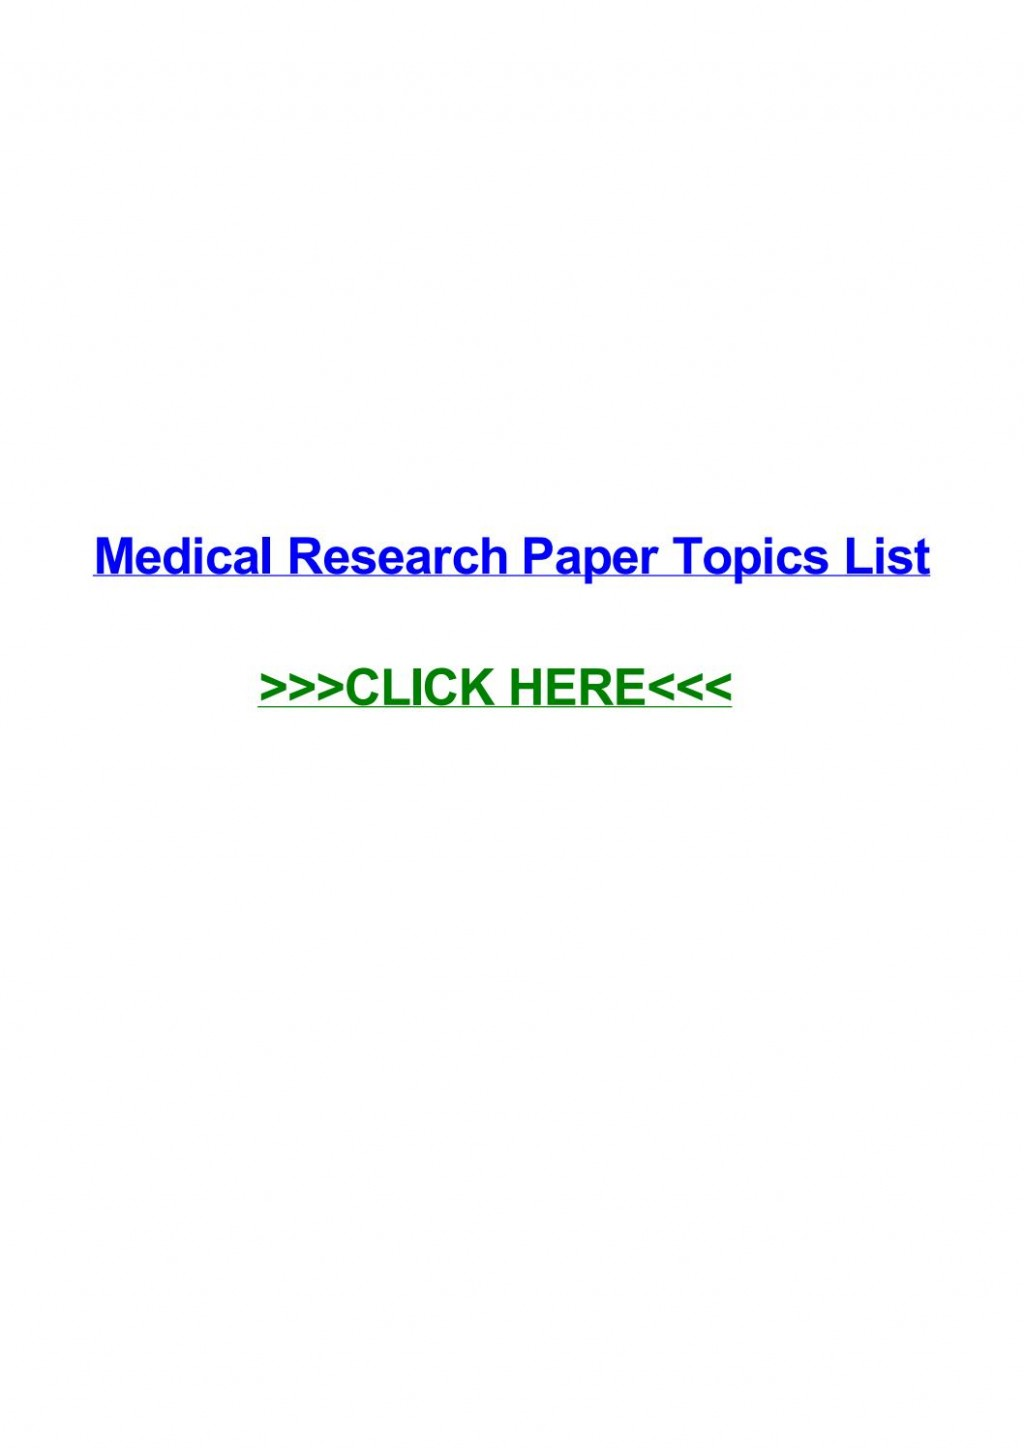 009 Medical Topics For Research Paper Page 1 Imposing Argumentative Interesting Large